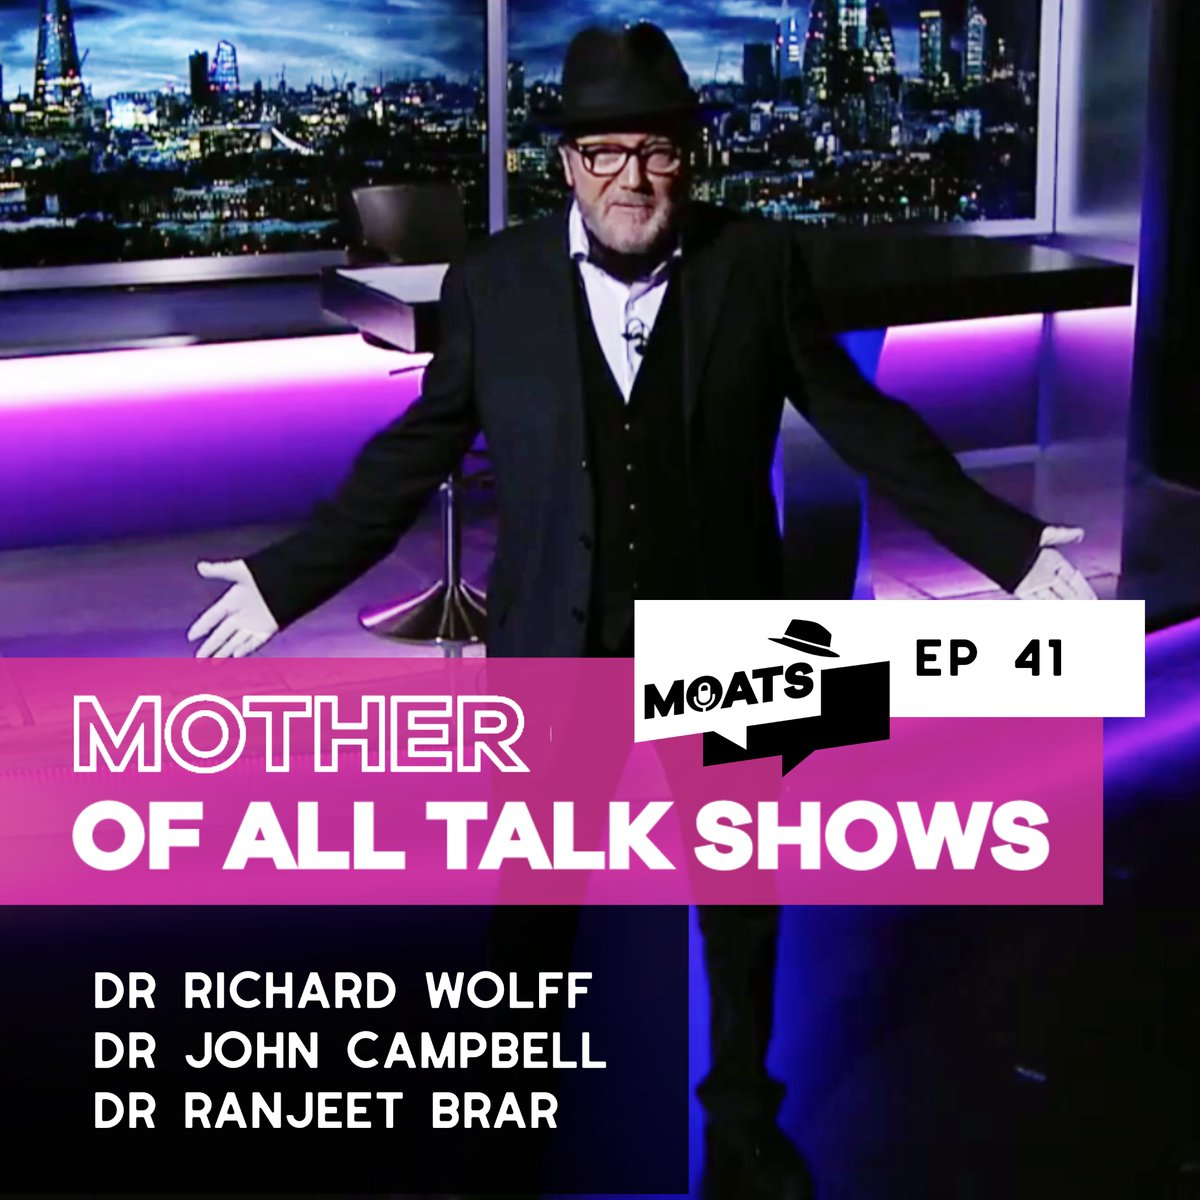 Heres this weeks #MOATS  podcast:  https://anchor.fm/dashboard/episode/ec4ch5  …  Find it on your favourite podcast platform  @georgegalloway  @Rango1917  @profwolff